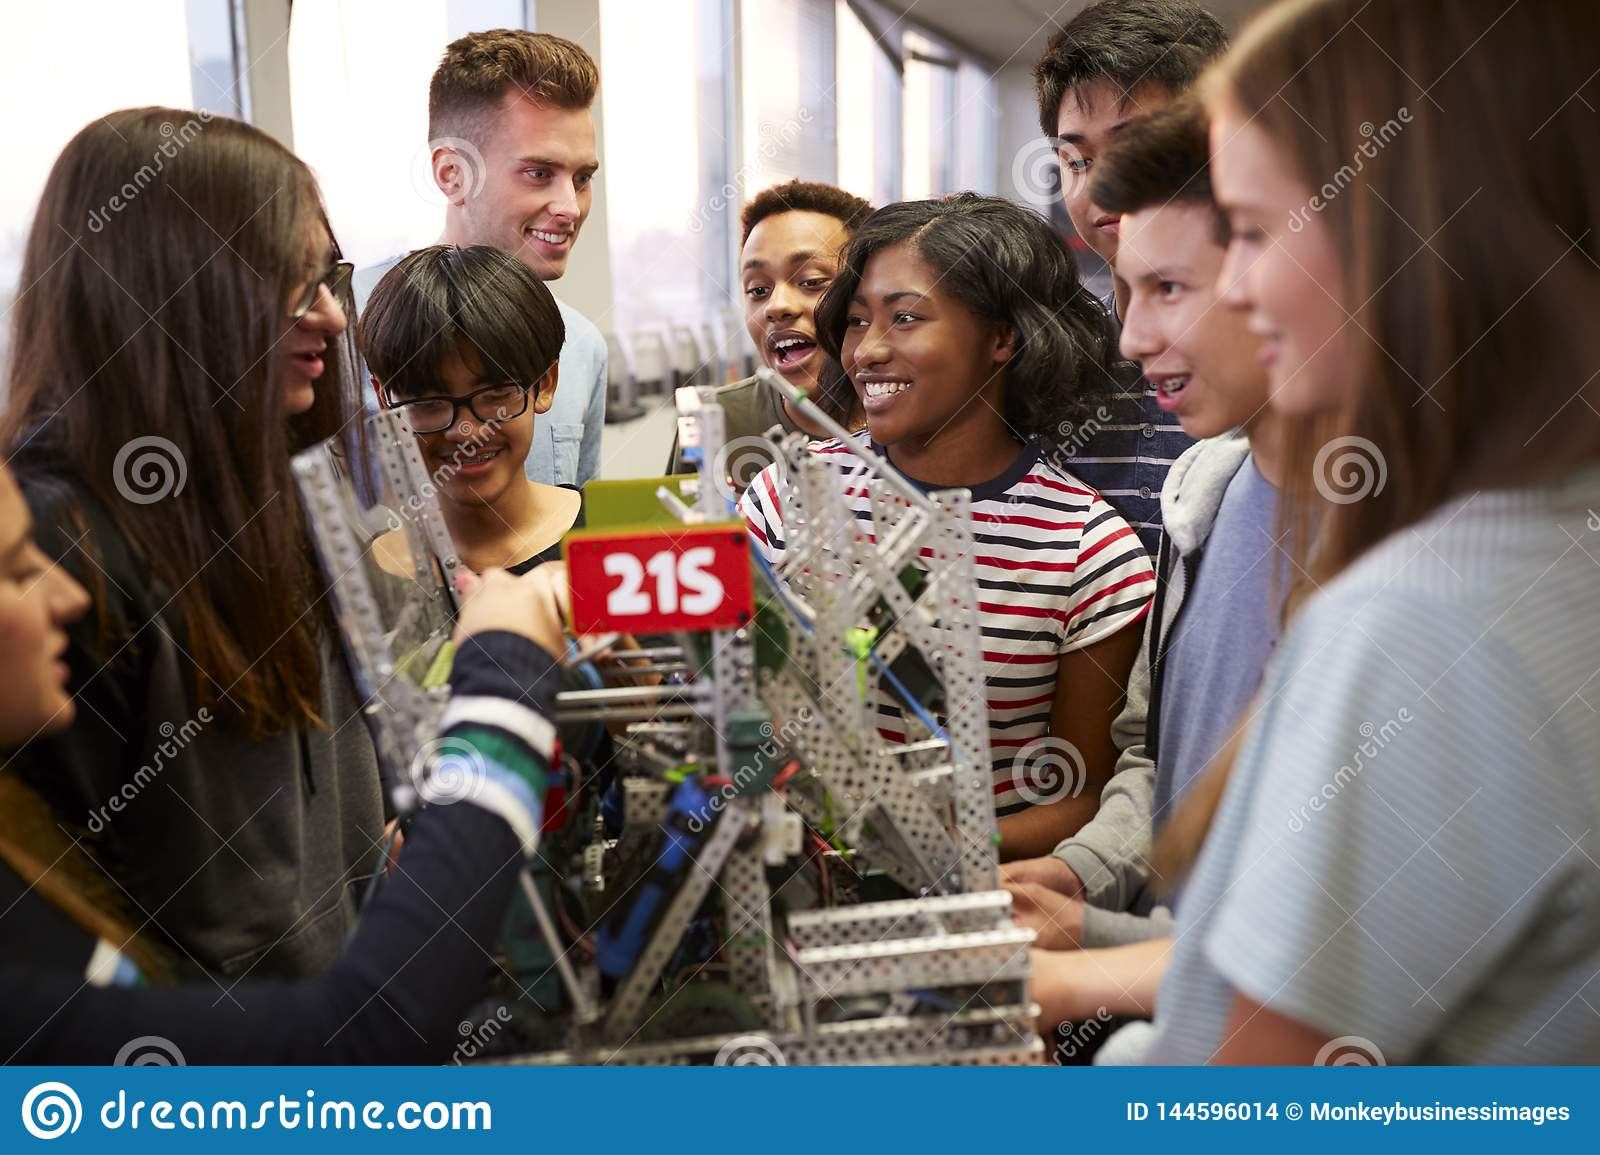 College Students With Teacher Holding Machine In Science Or Robotics Class